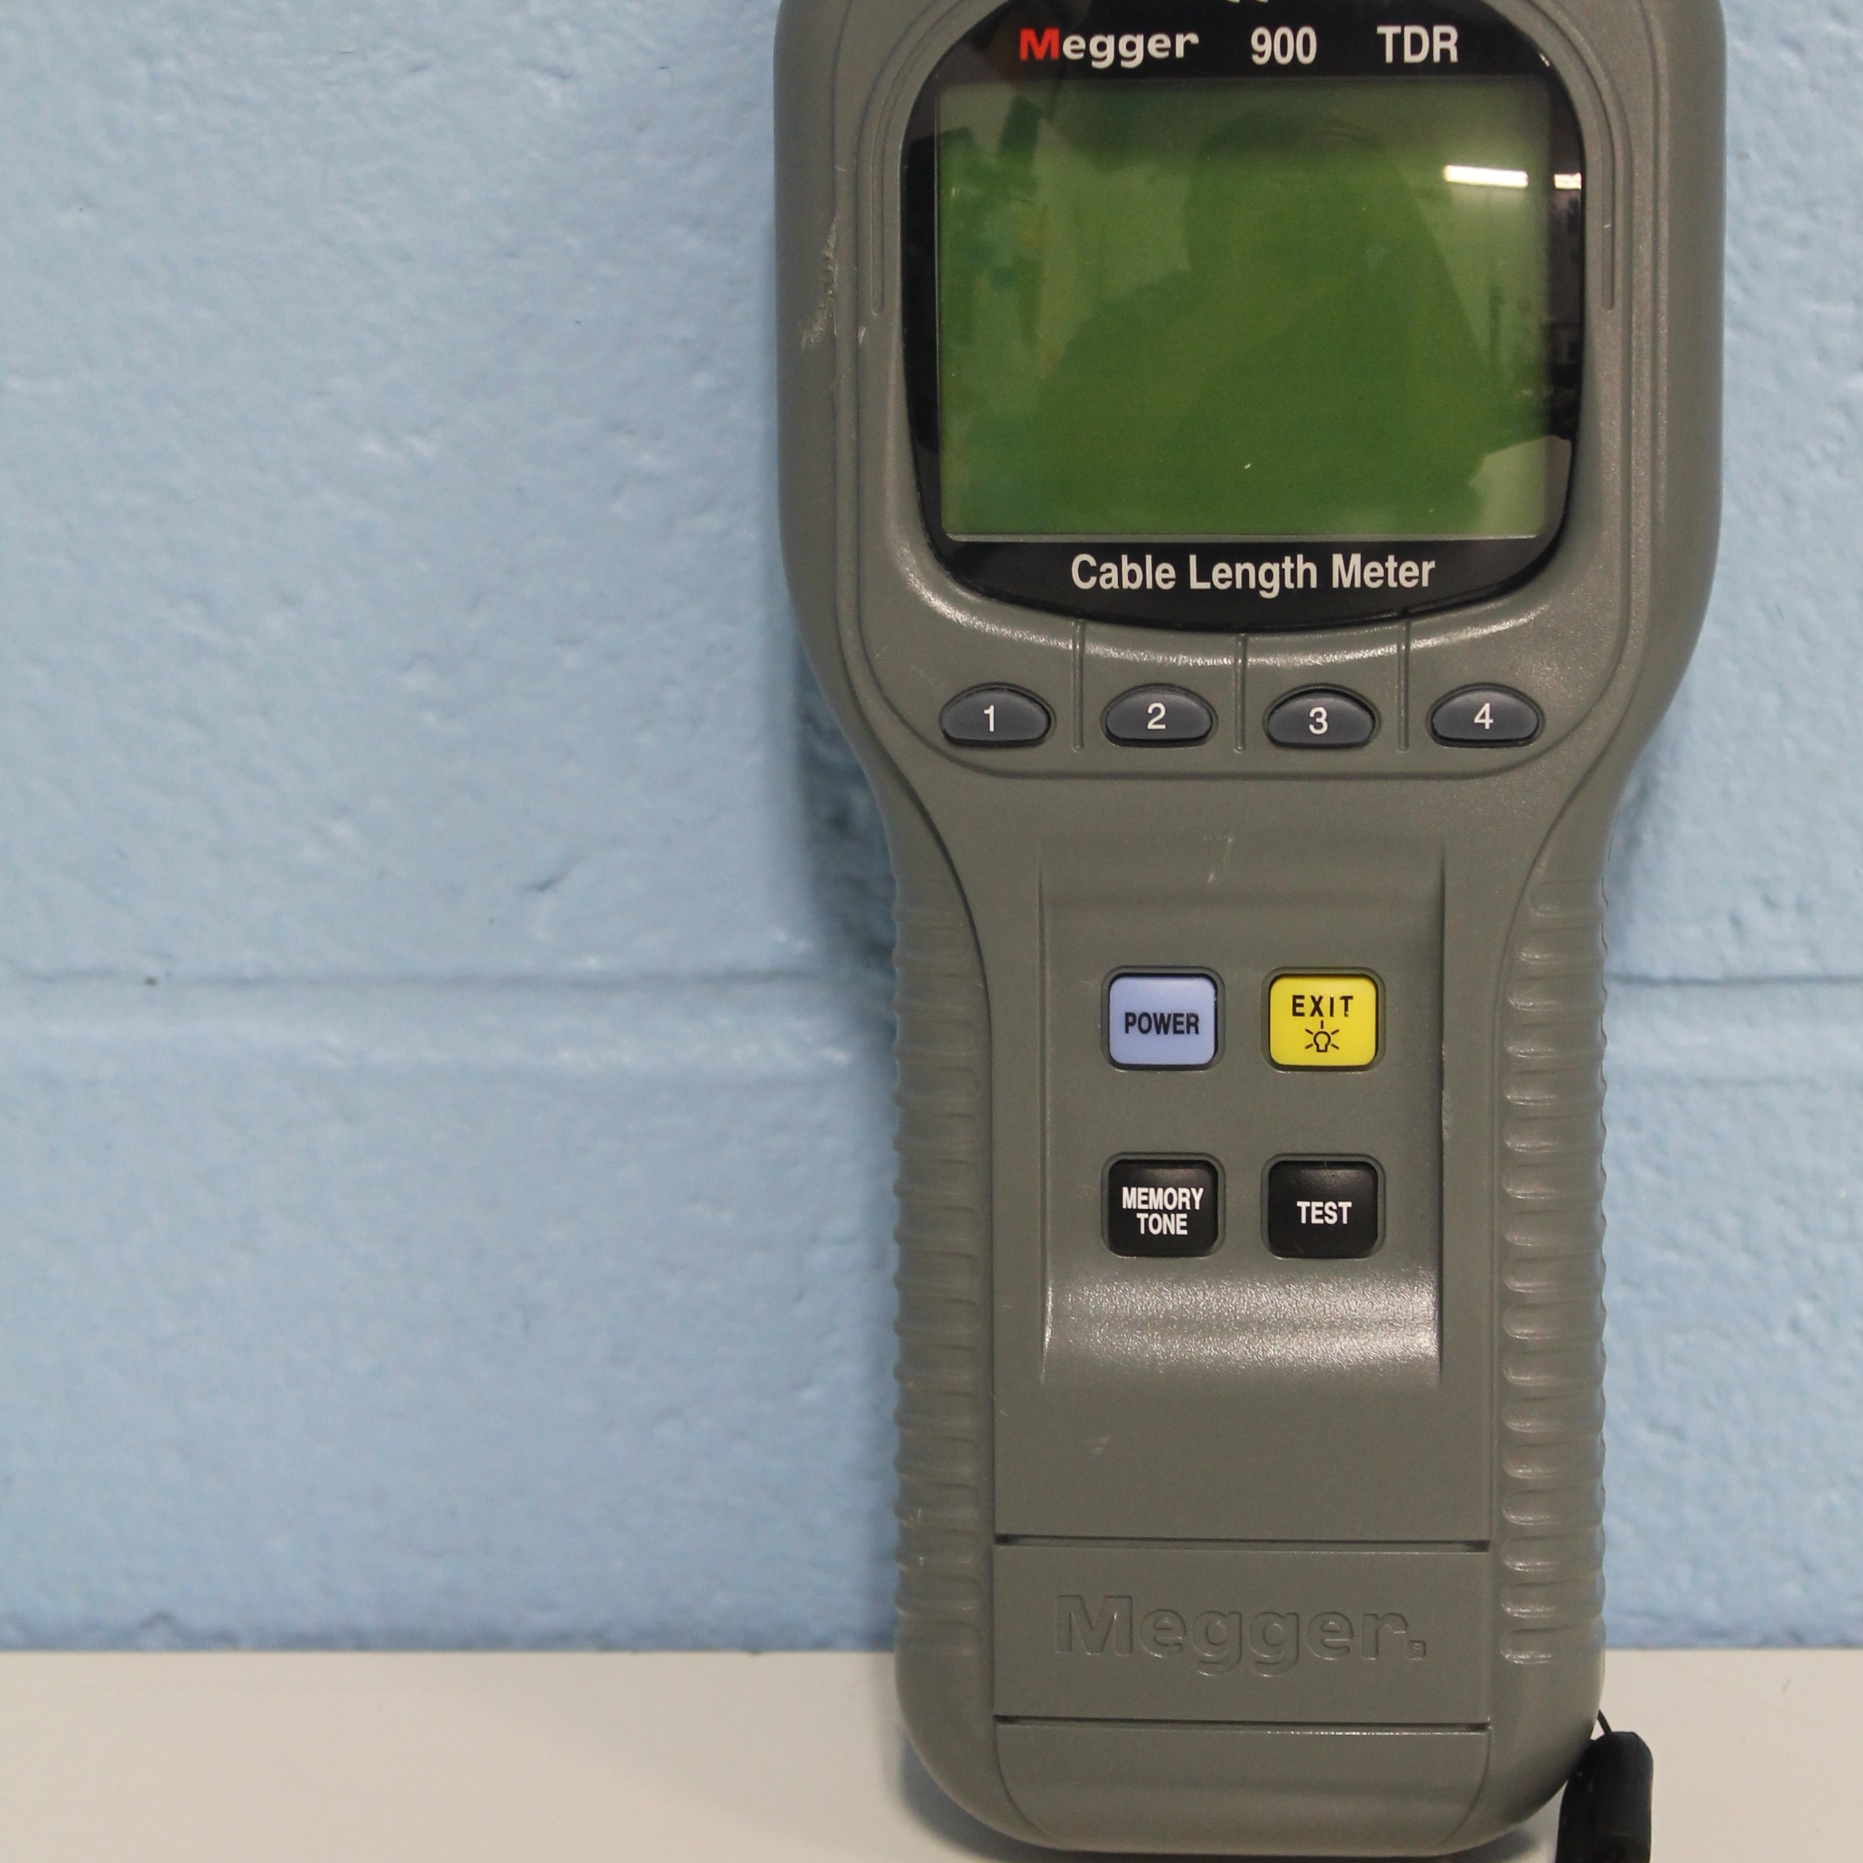 TDR900 Time Domain Reflectometer and Cable Length Meter Name